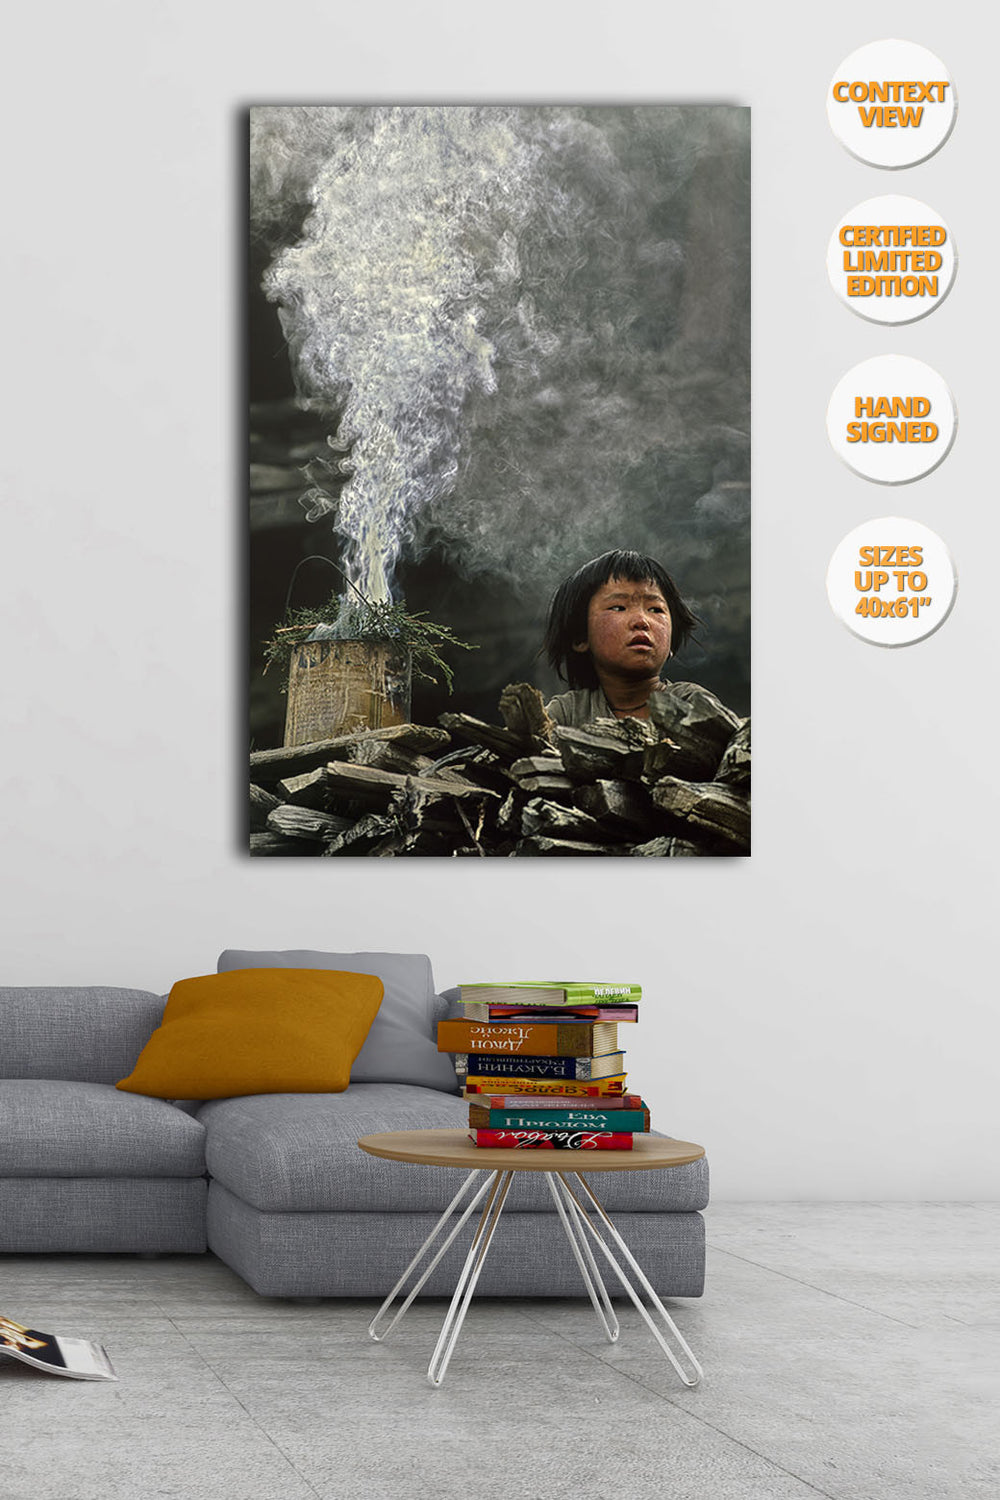 Boy and Incense smoke, Himalaya, Nepal. | View fo the Print hanged in living room.